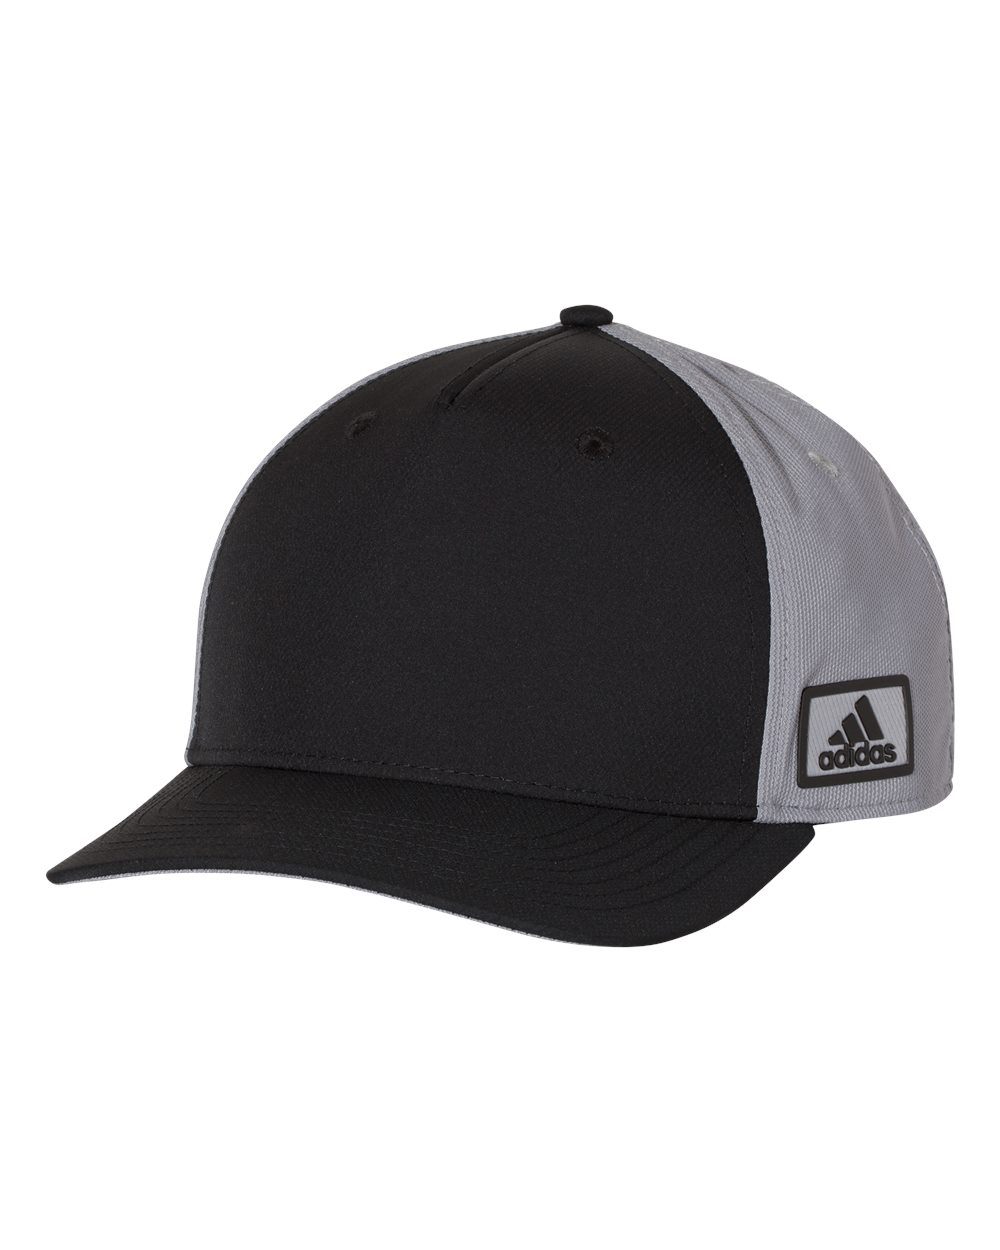 Adidas A616 - Block Patch Cap